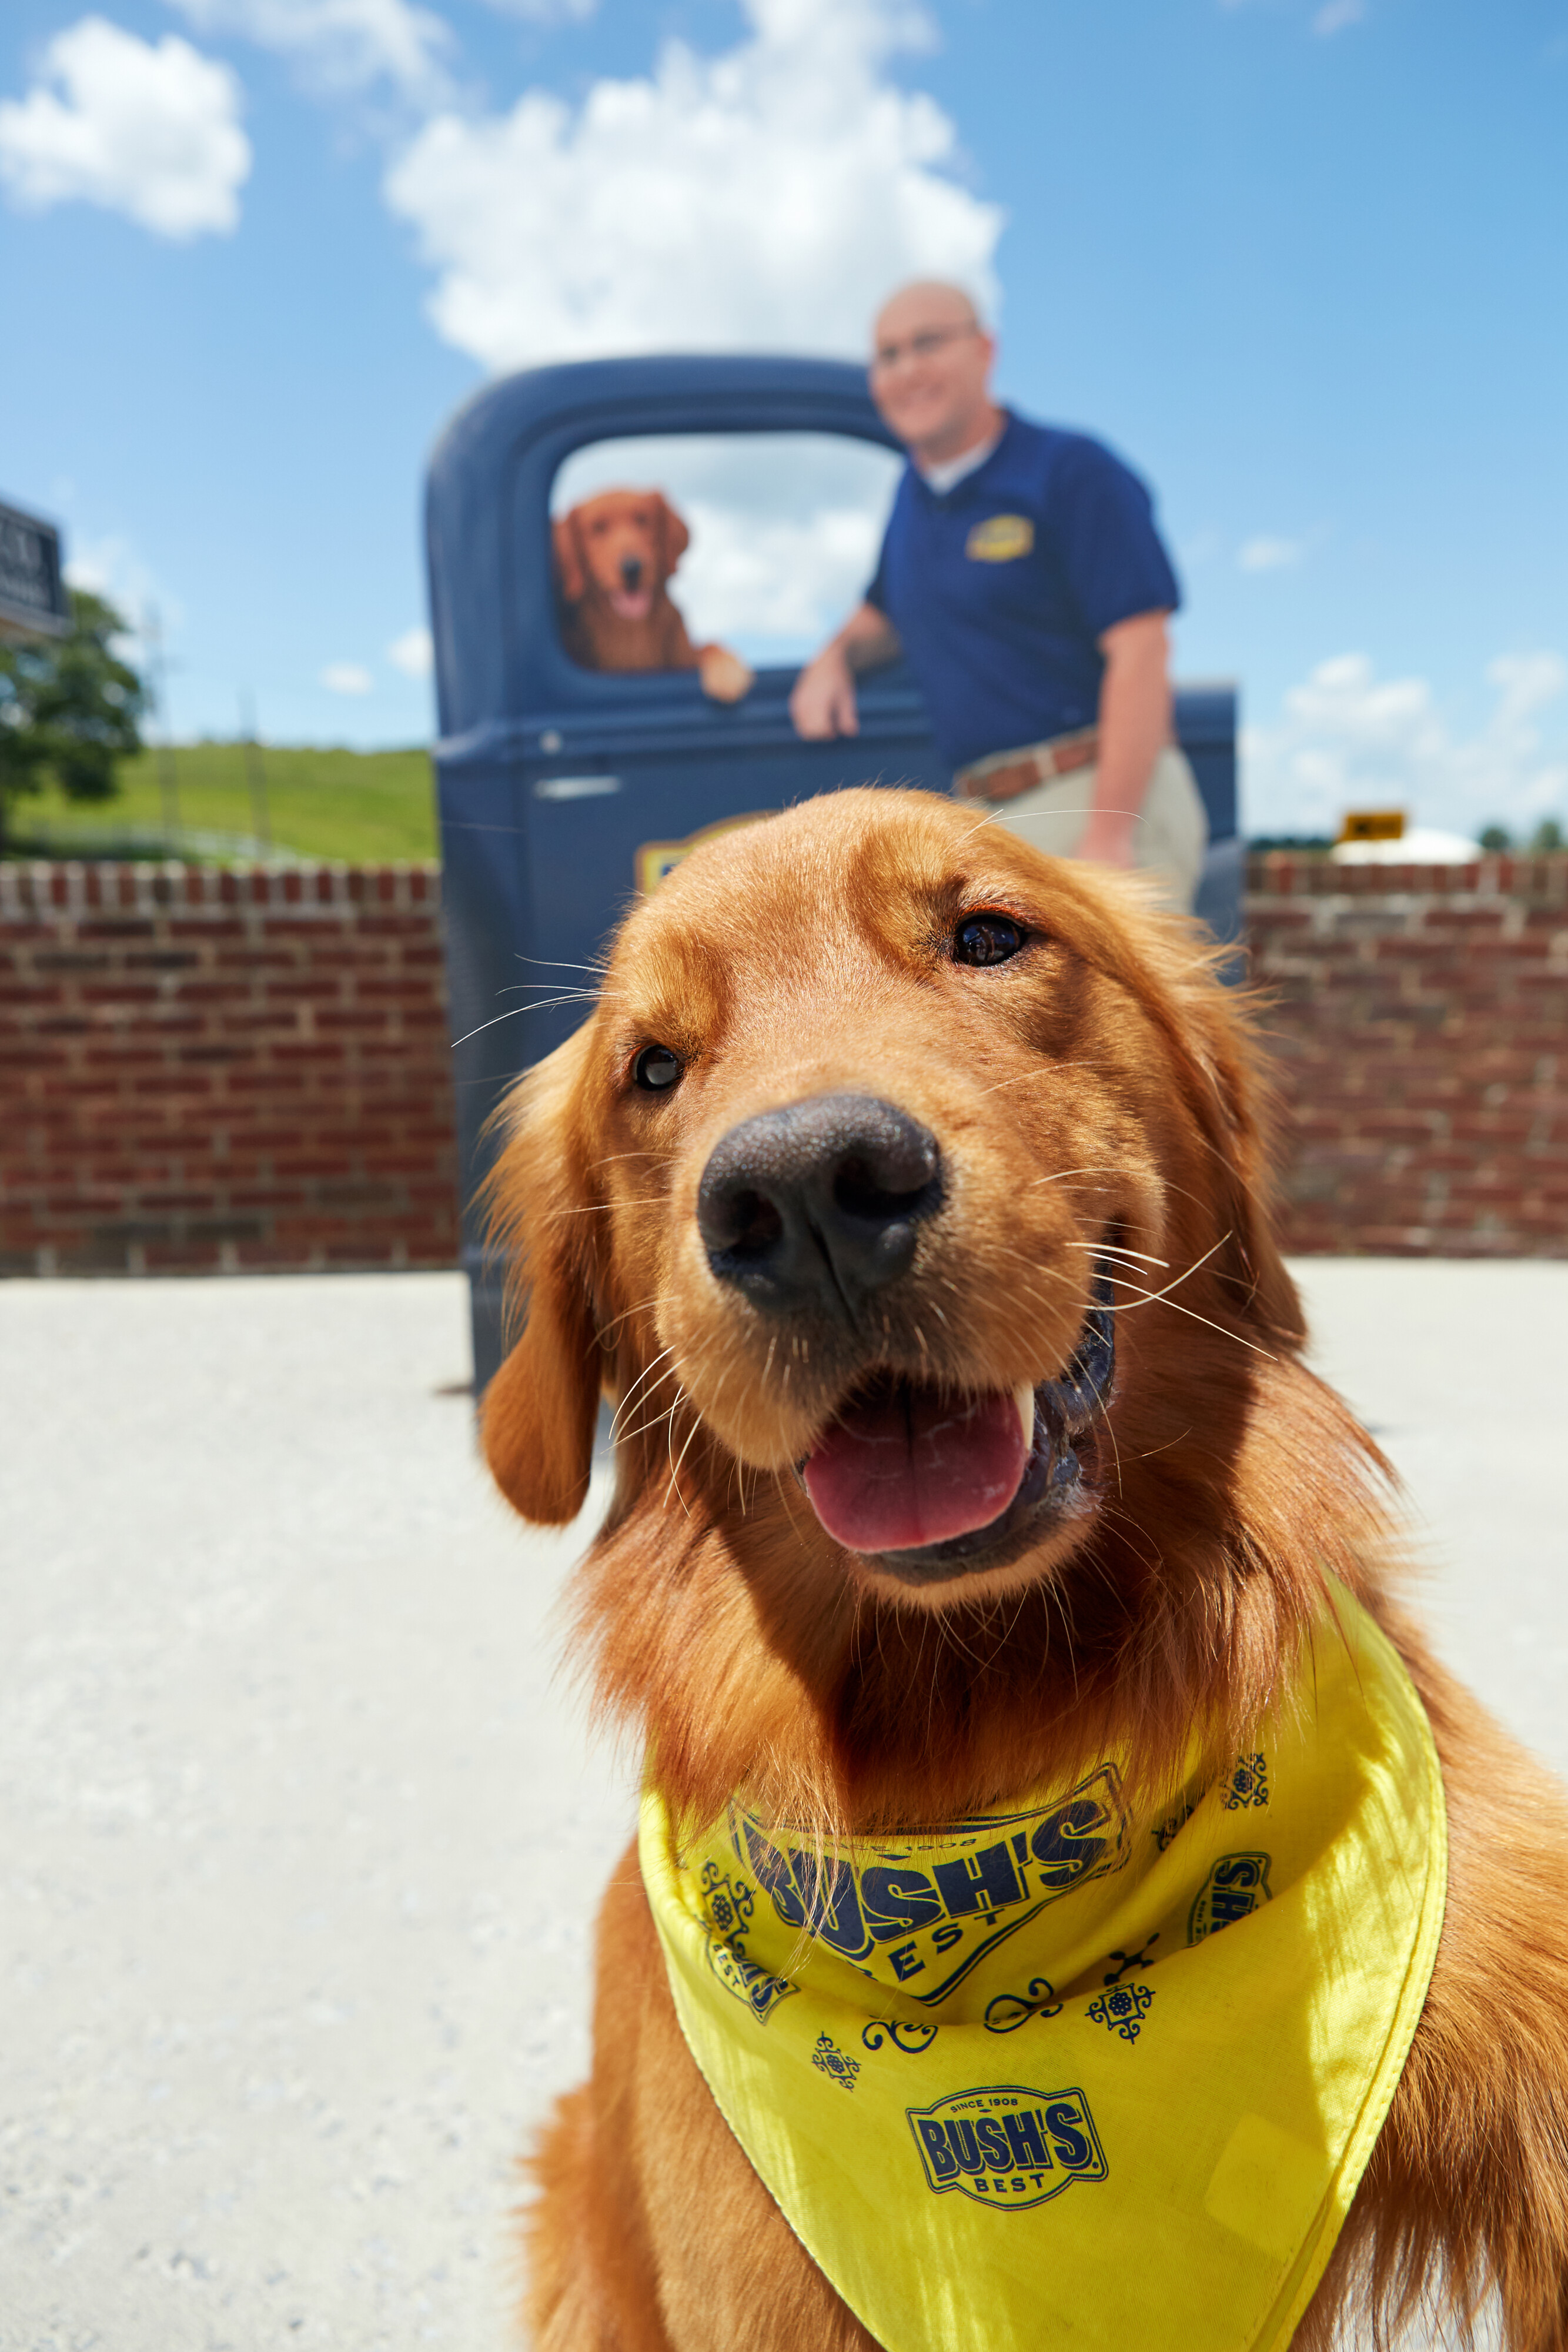 A golden retriever wearing a bandana smiling in front of a man and a vintage pickup truck